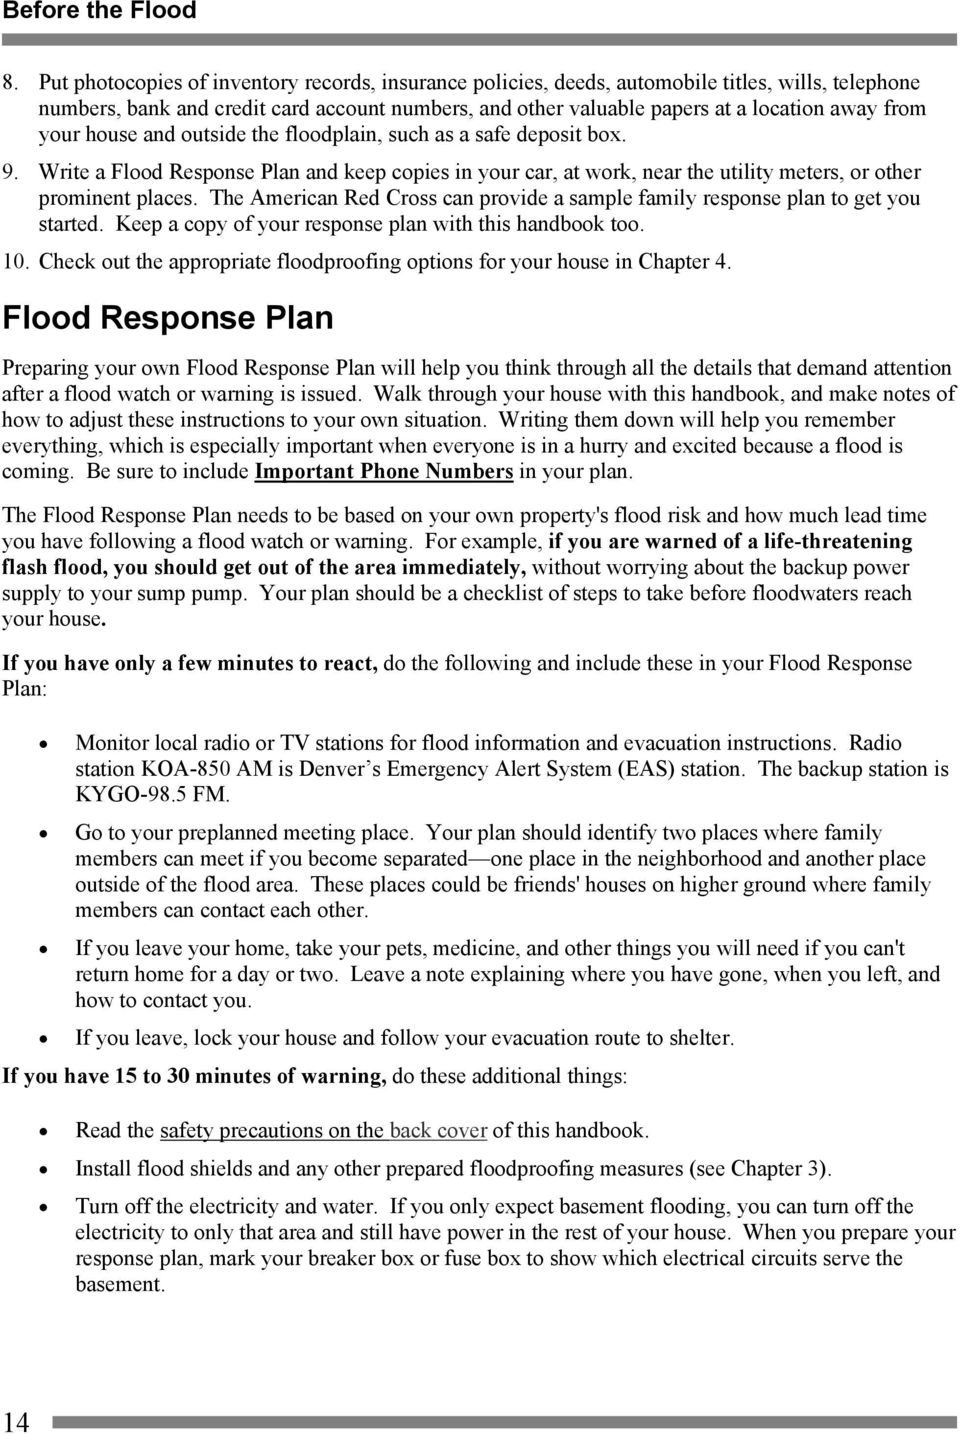 your house and outside the floodplain, such as a safe deposit box. 9. Write a Flood Response Plan and keep copies in your car, at work, near the utility meters, or other prominent places.